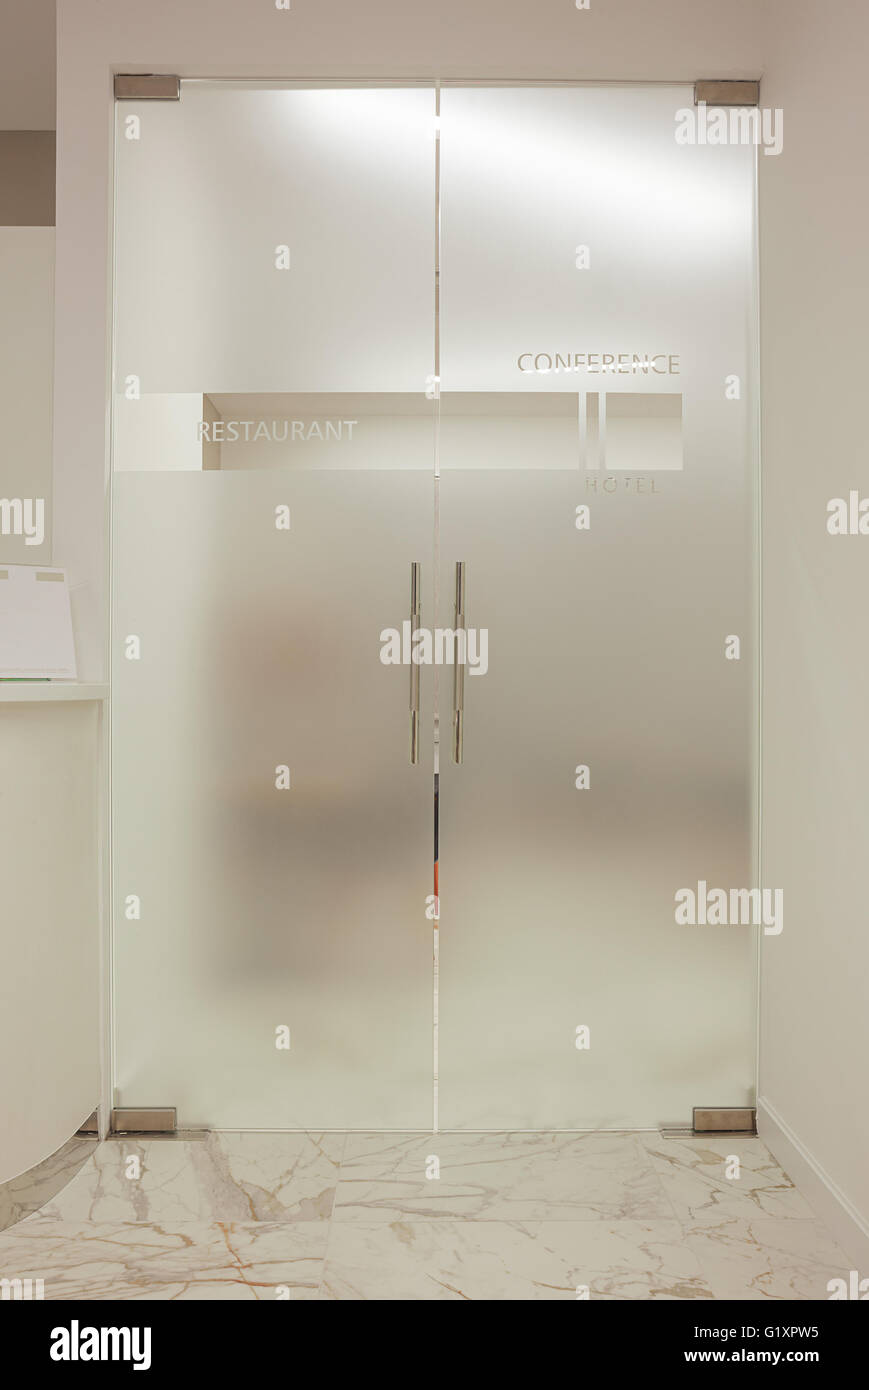 Modern Glass Doors Details, With Text Restaurant And Conference.   Stock  Image